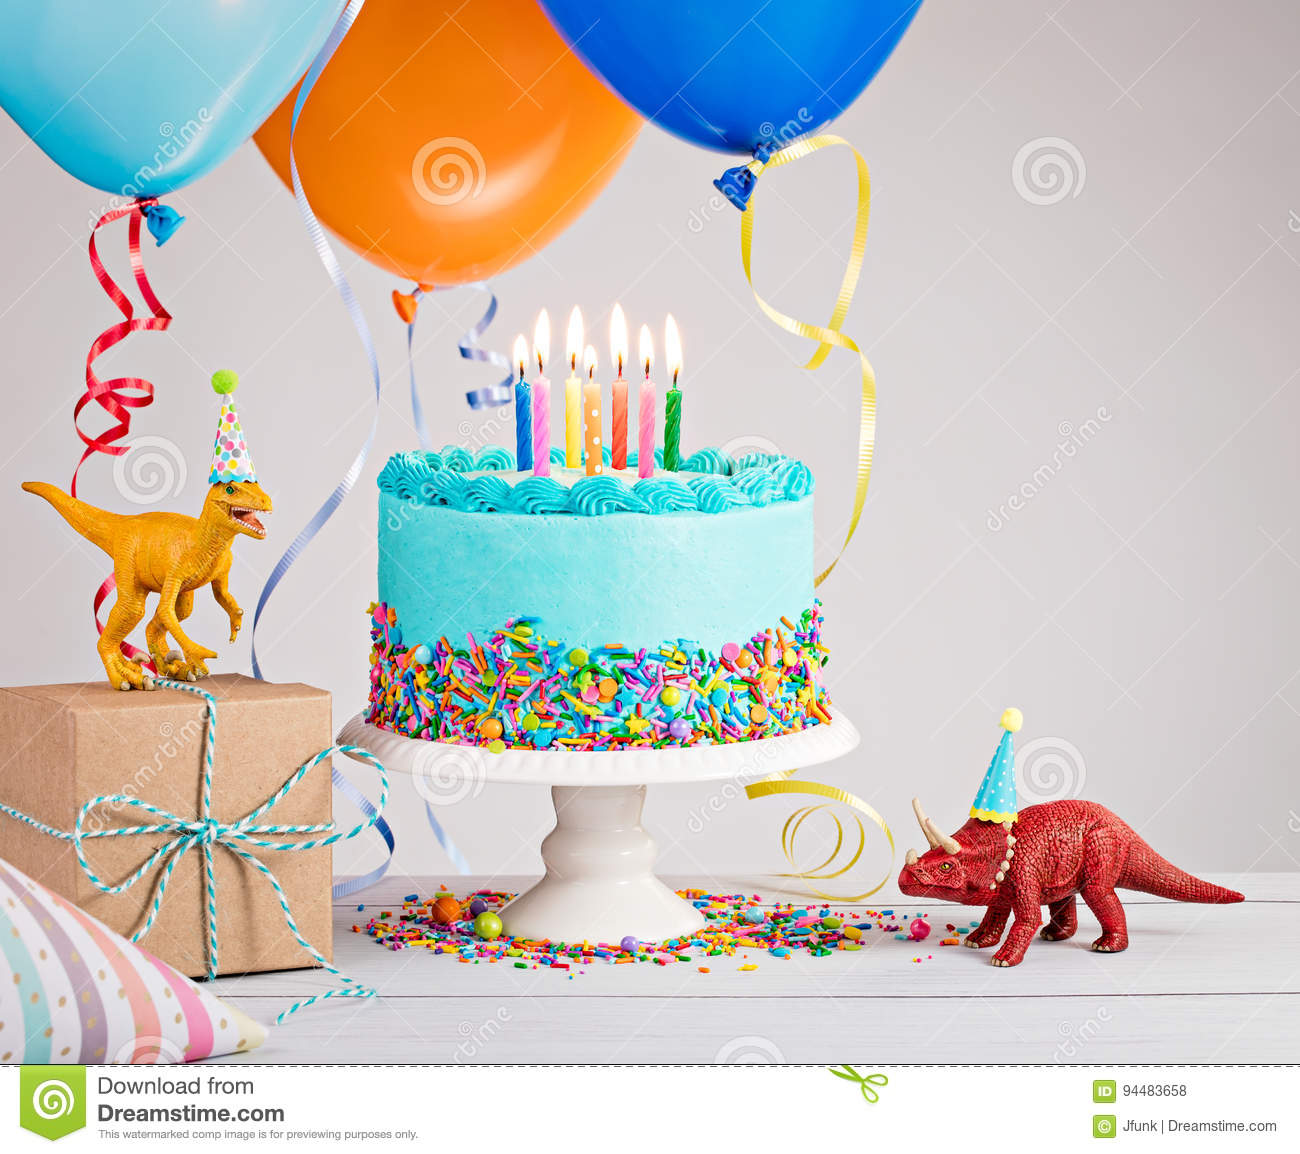 Strange Blue Birthday Cake With Balloons Stock Photo Image Of Personalised Birthday Cards Veneteletsinfo